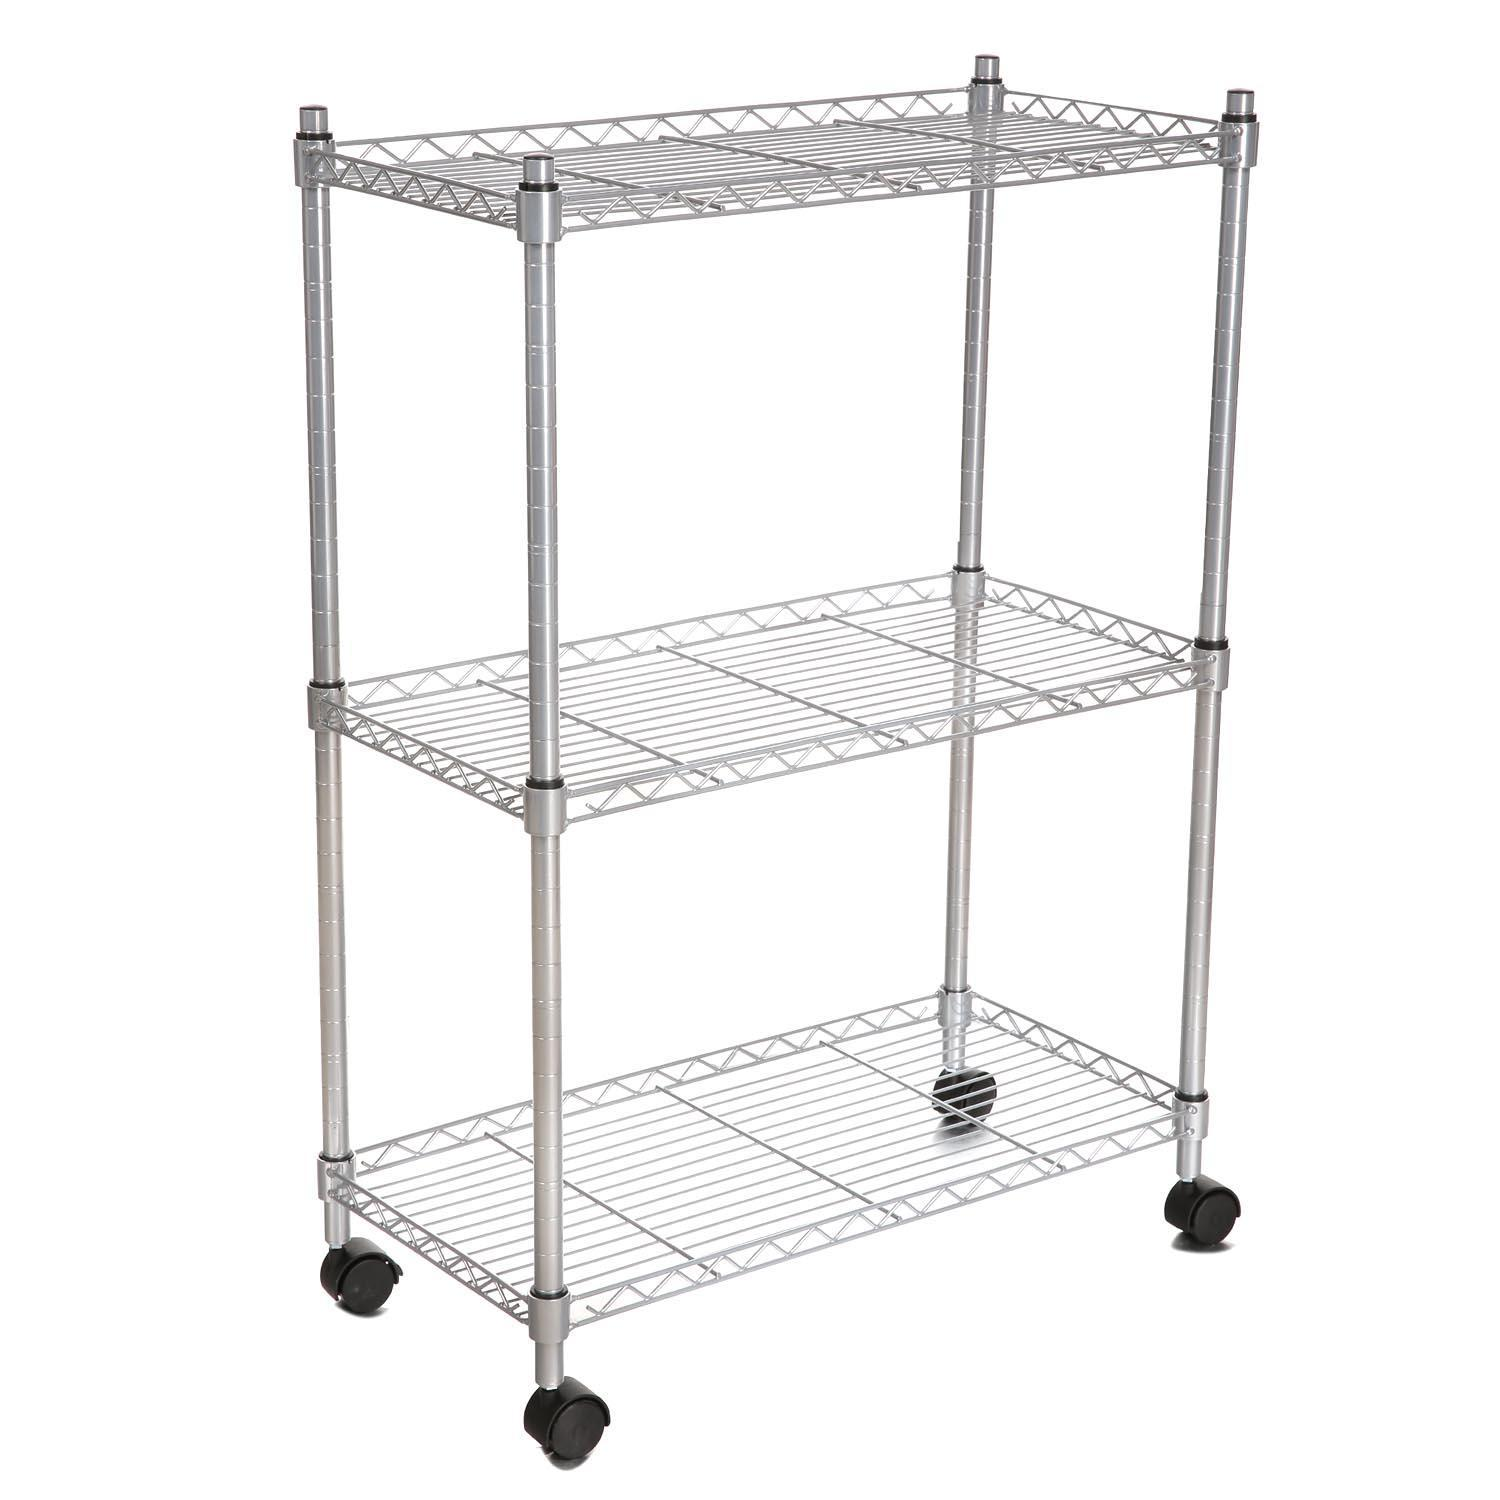 Shopifystore Clearance! Modern 3 Tier Wire Shelf Shelving Kitchen Rack Heavy Duty Microwave Oven Stand Storage Cart with Wheels